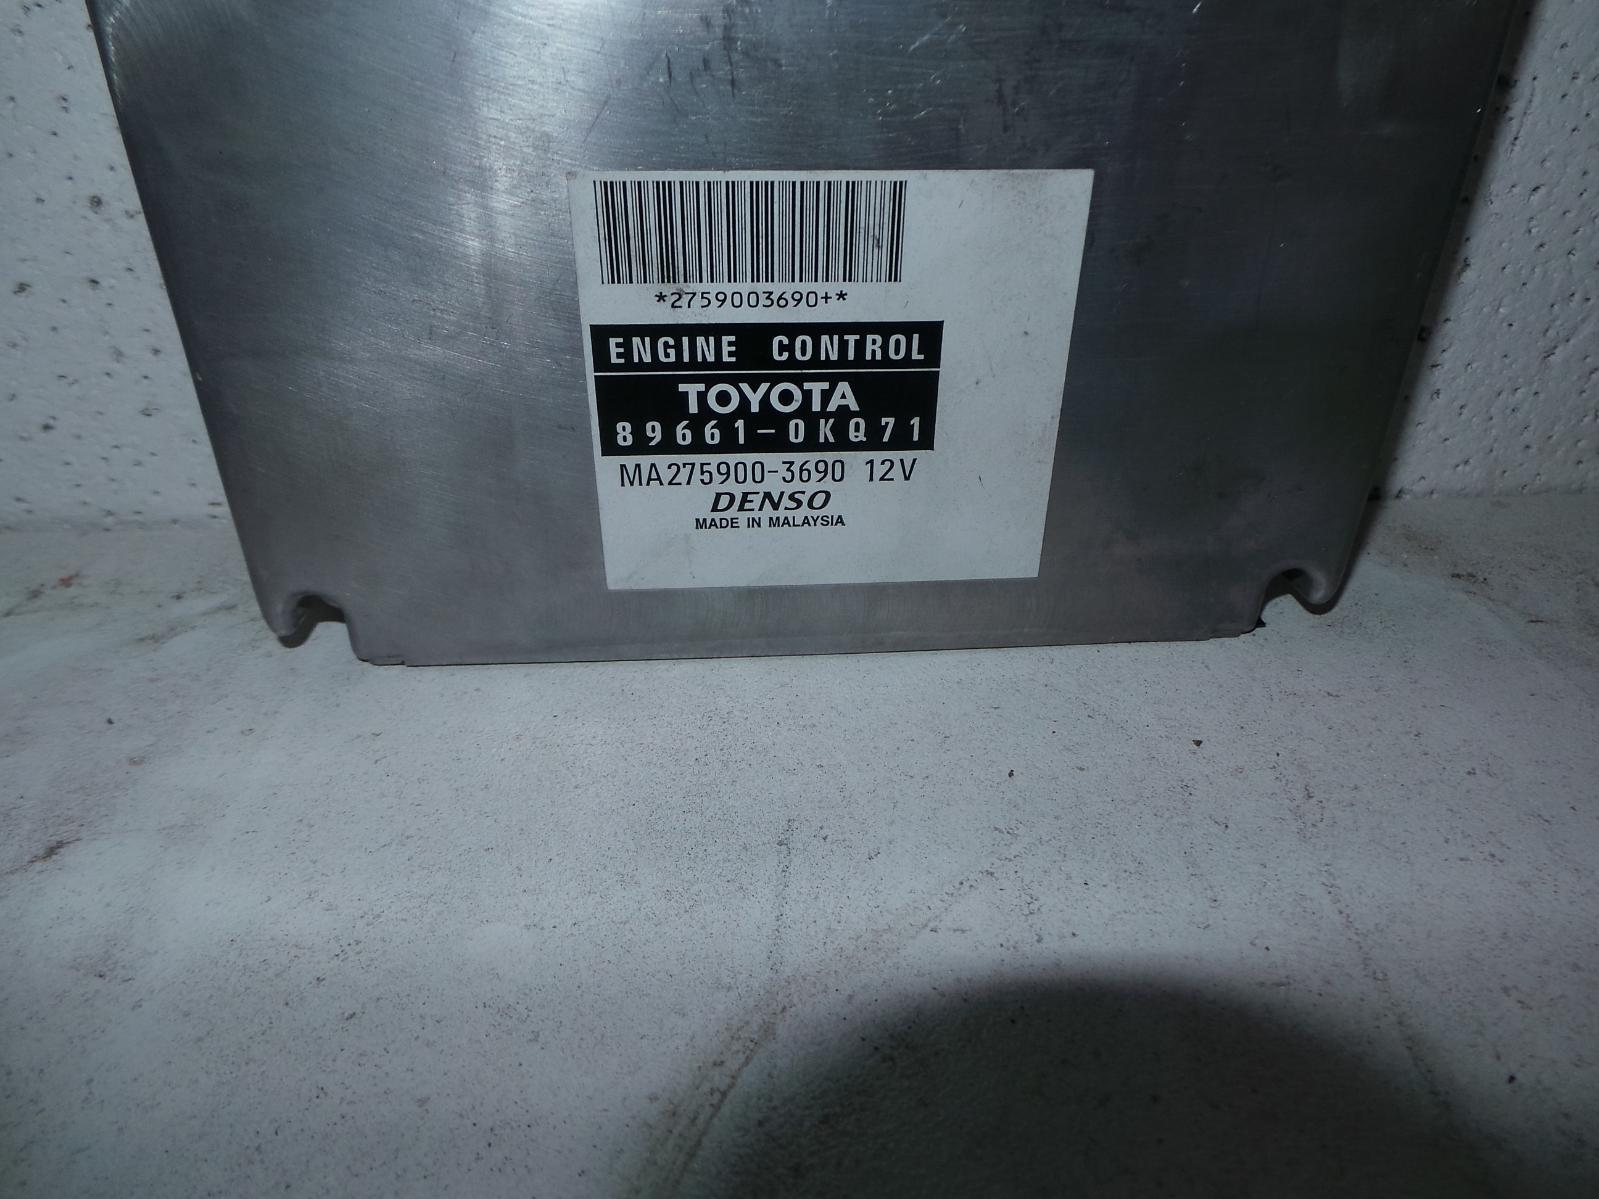 TOYOTA HILUX, Ecu, ENGINE ECU, 3.0, 1KD-FTV, DIESEL, MANUAL, P/N 89661-0KQ71, ECU ONLY, 02/05-08/15